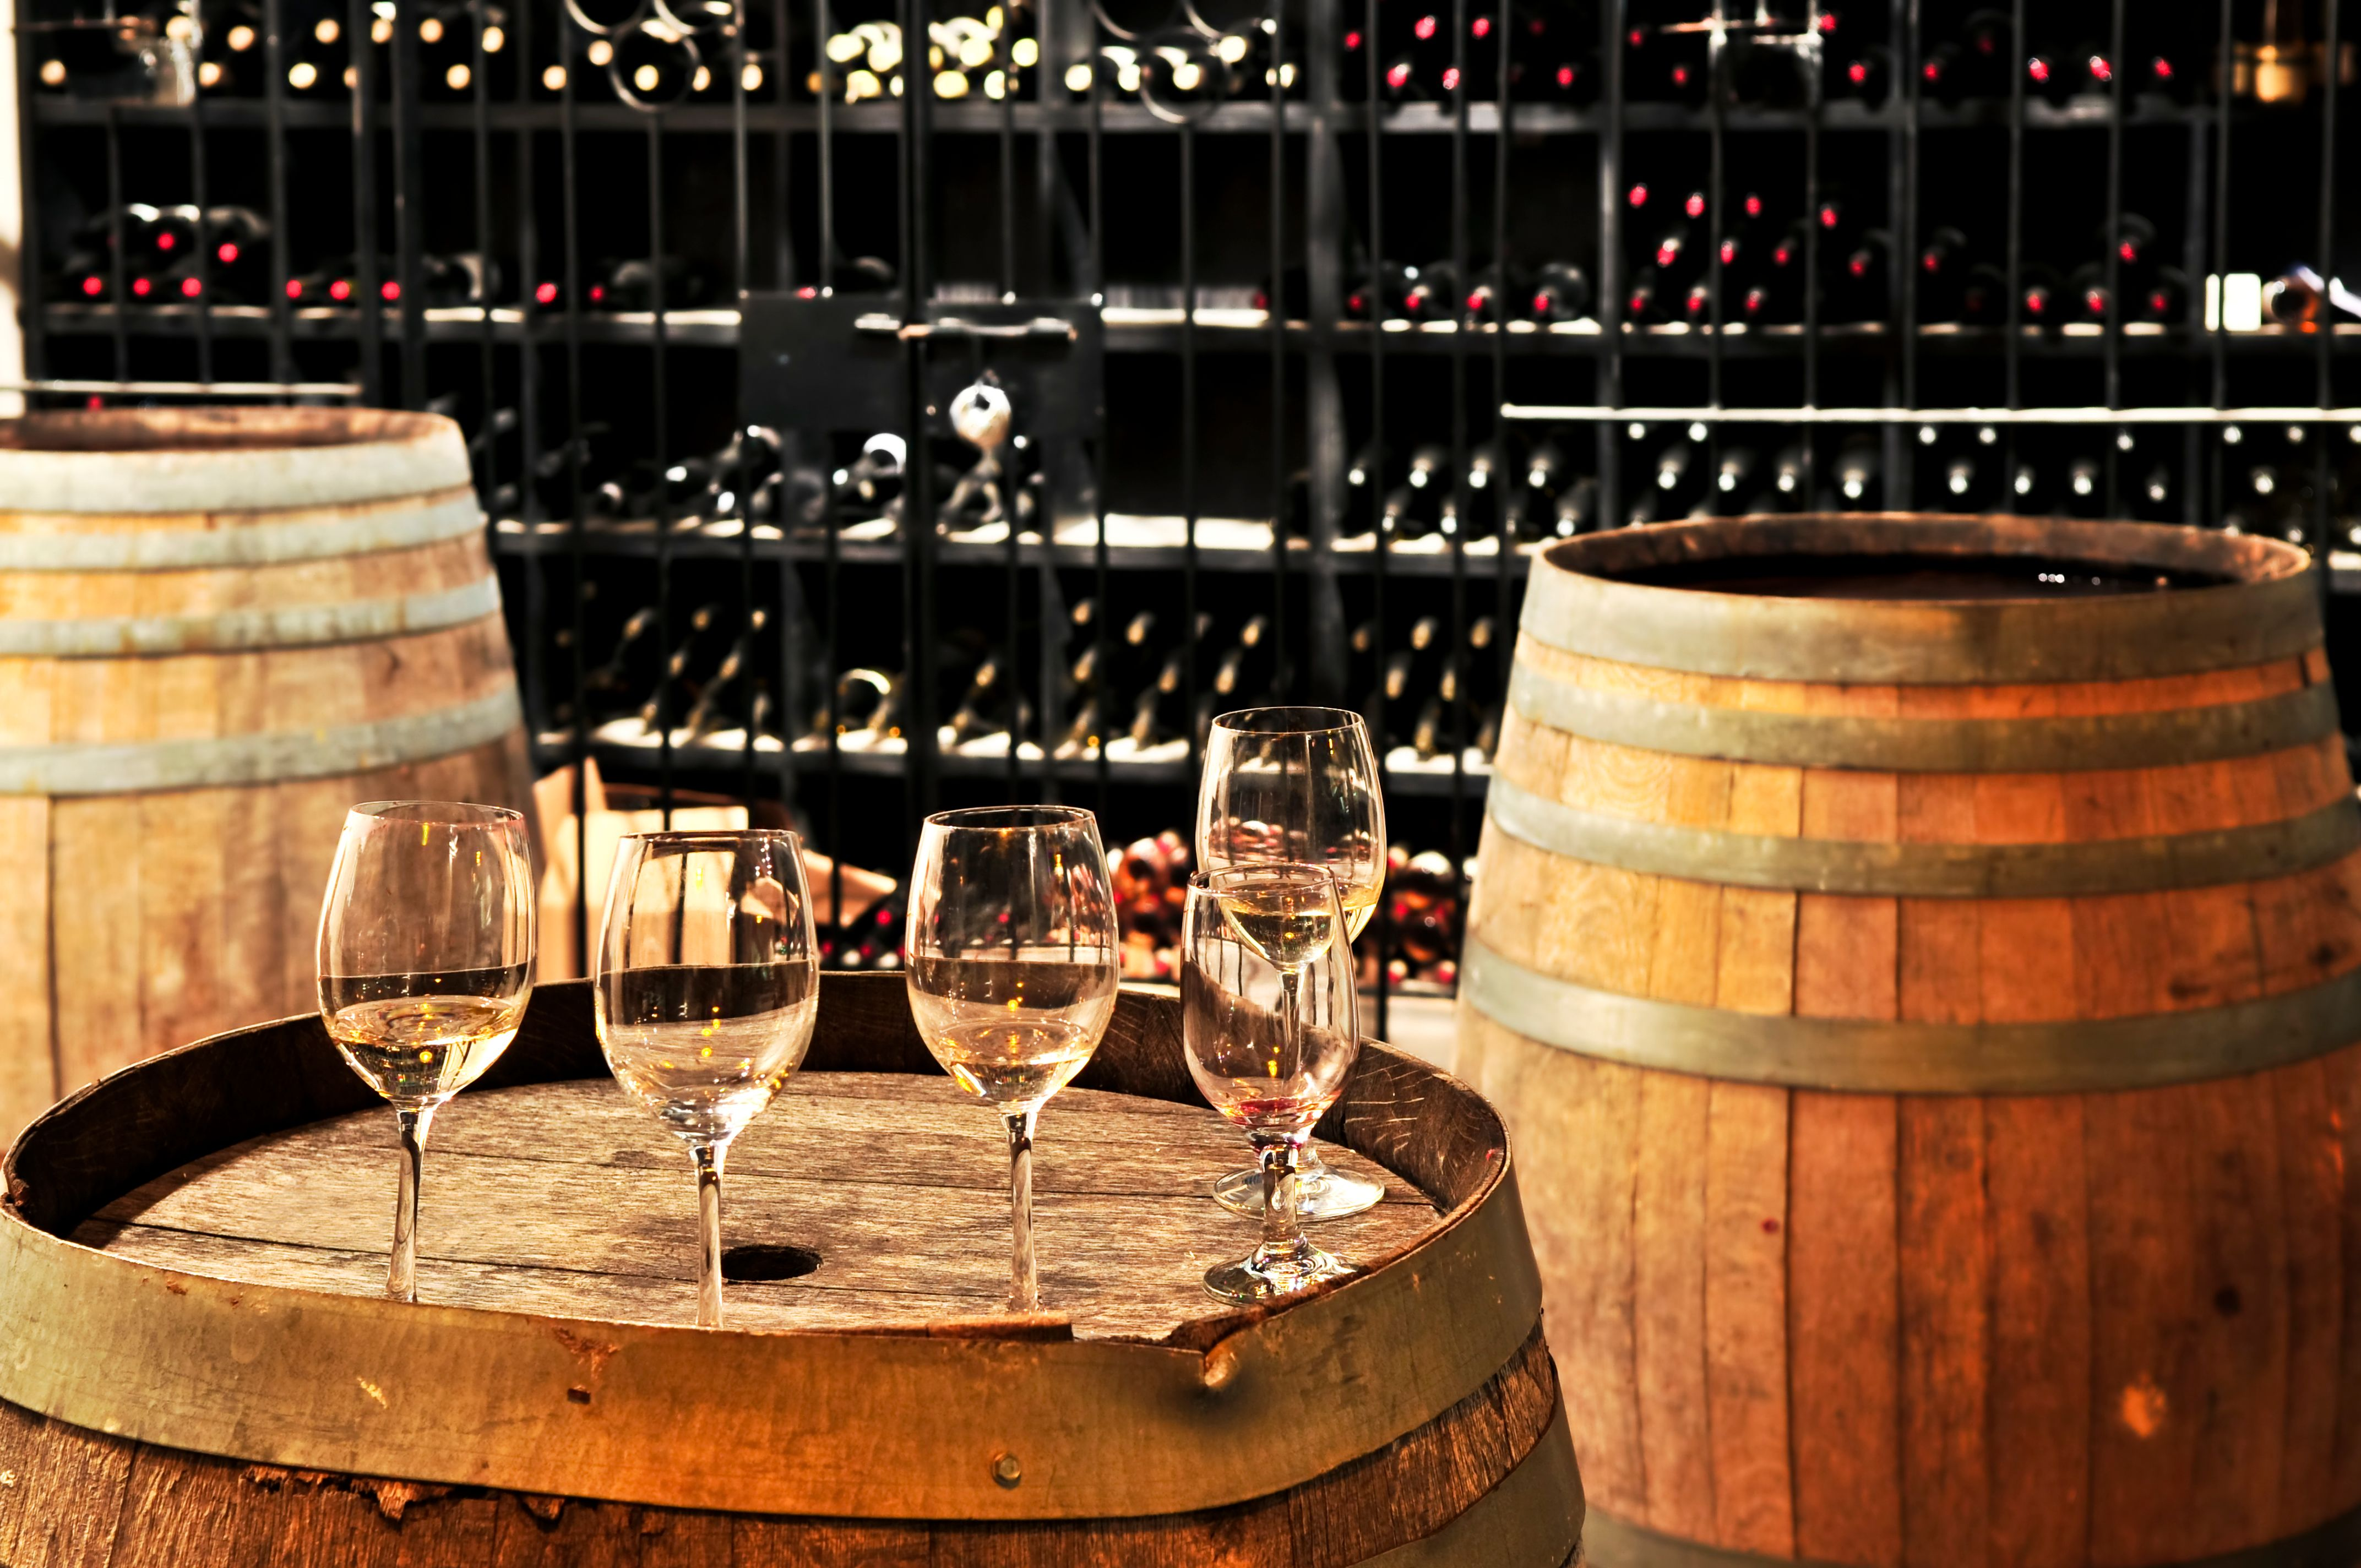 Wineries & Hospitality